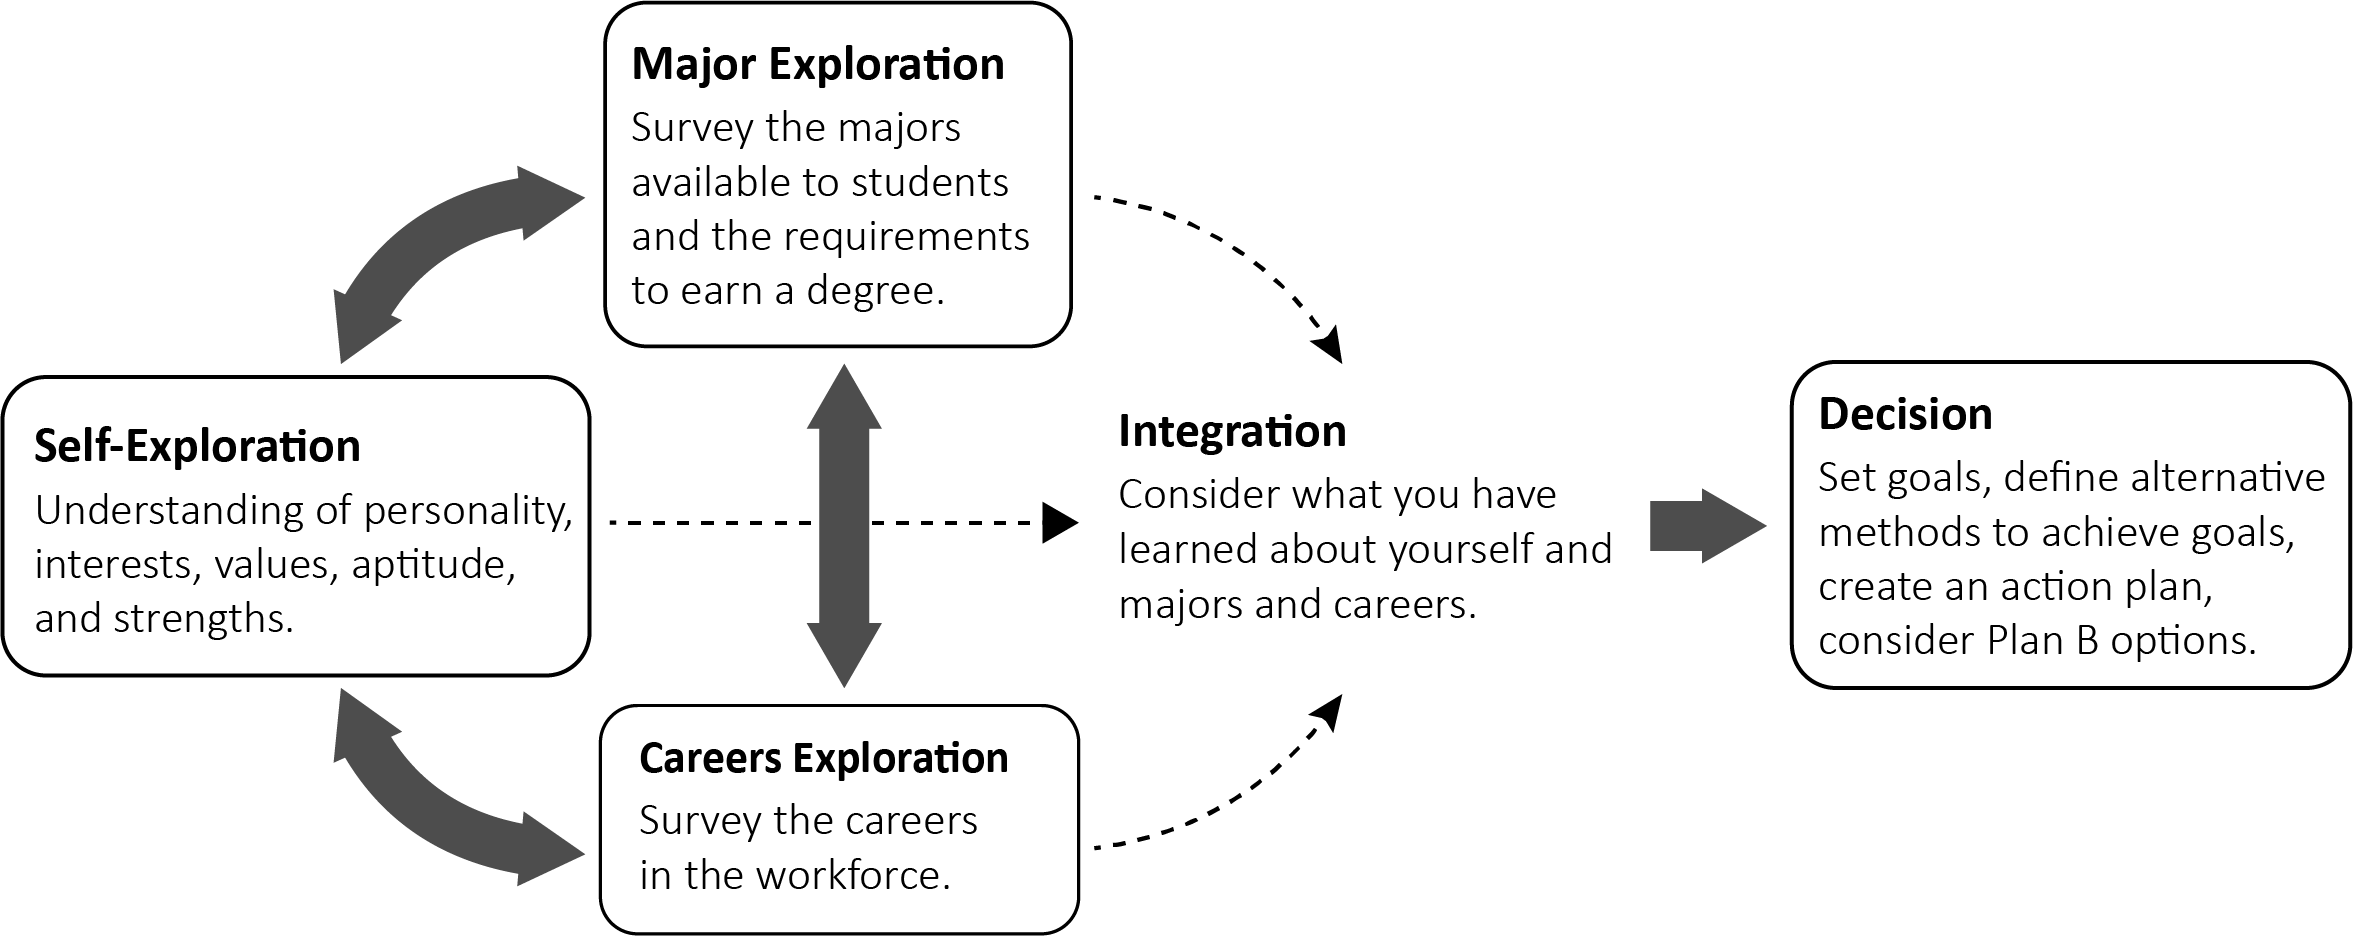 Graphic about the career exploration process consisting of Career Exploration, Self-Exploration, Major Exploration and integrating those to make a decision